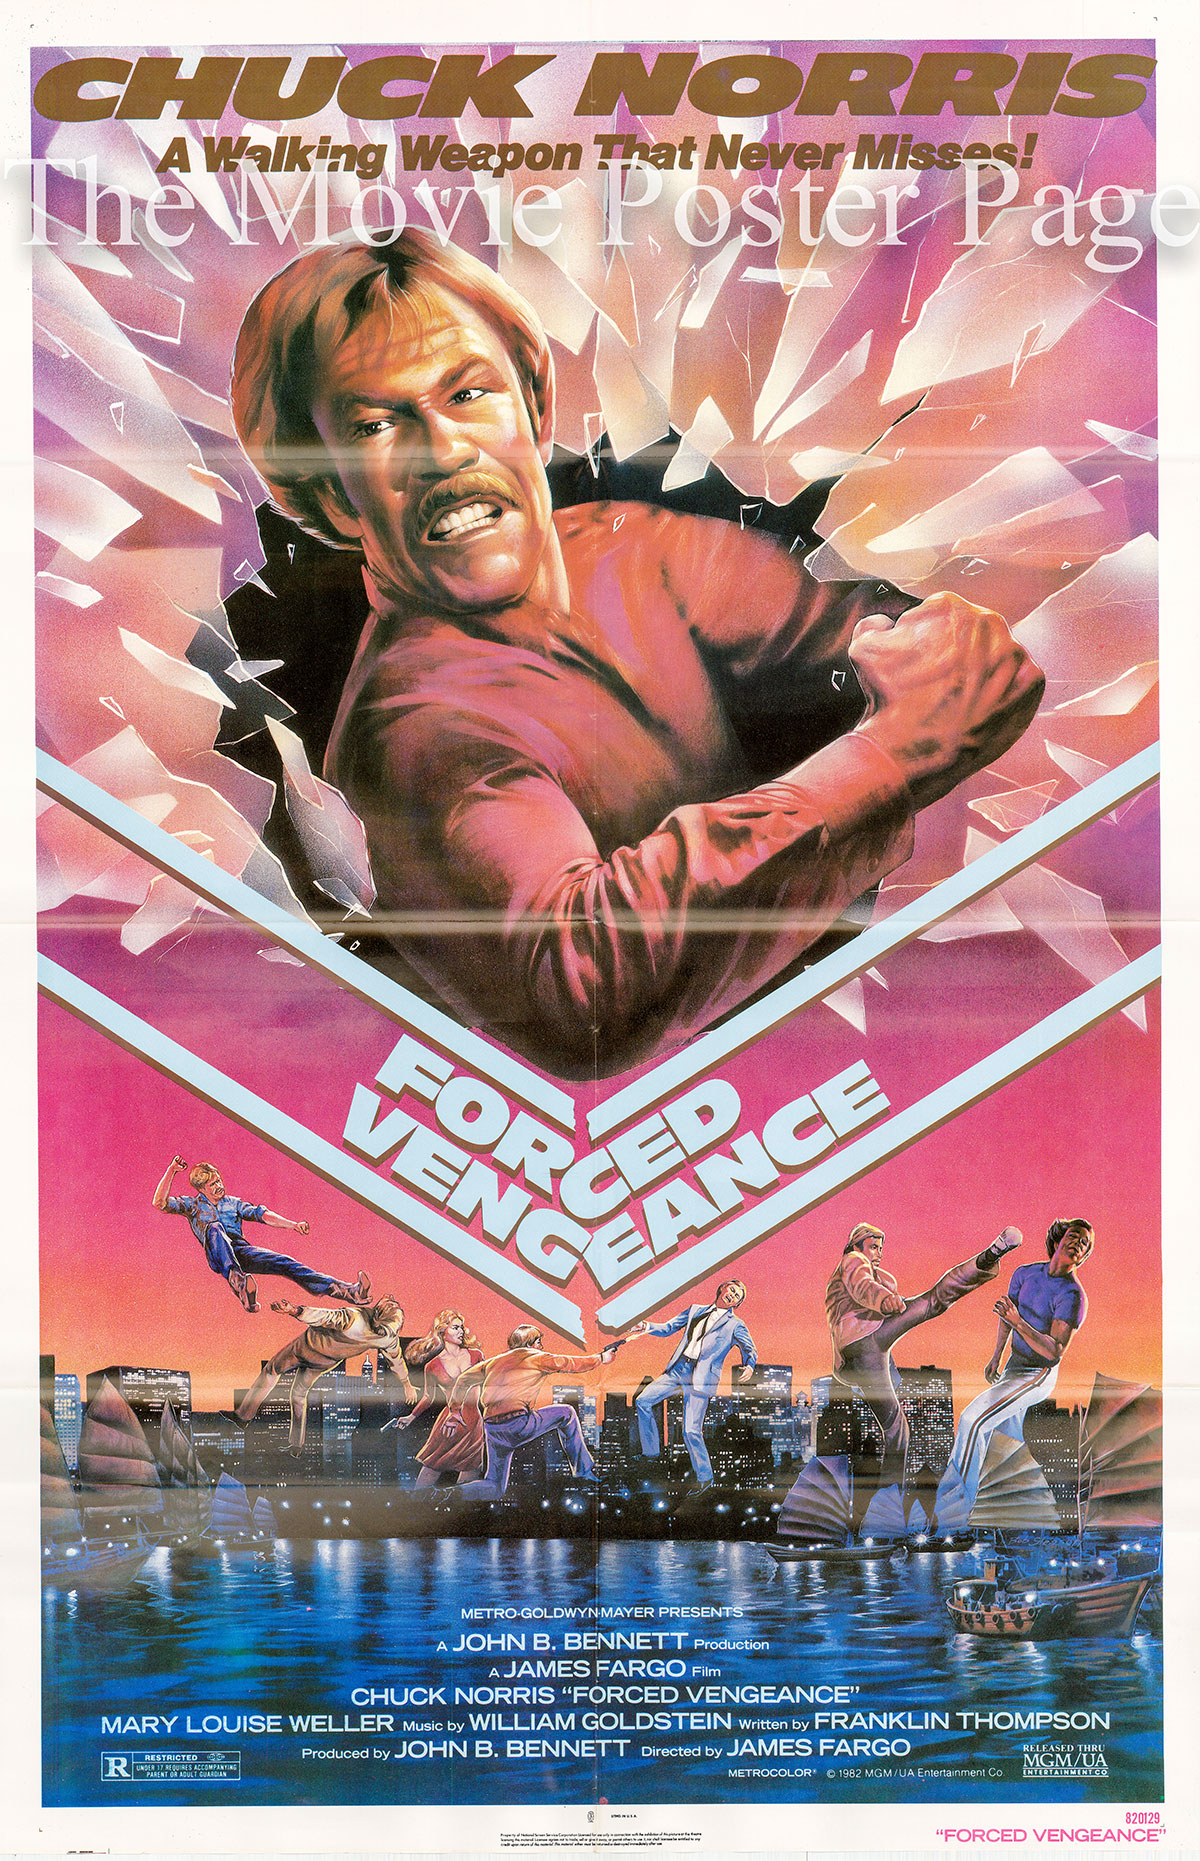 Pictured is a US one-sheet poster for the 1982 James Fargo film Forced Vengenace starring Chuck Norris as Josh Randall.